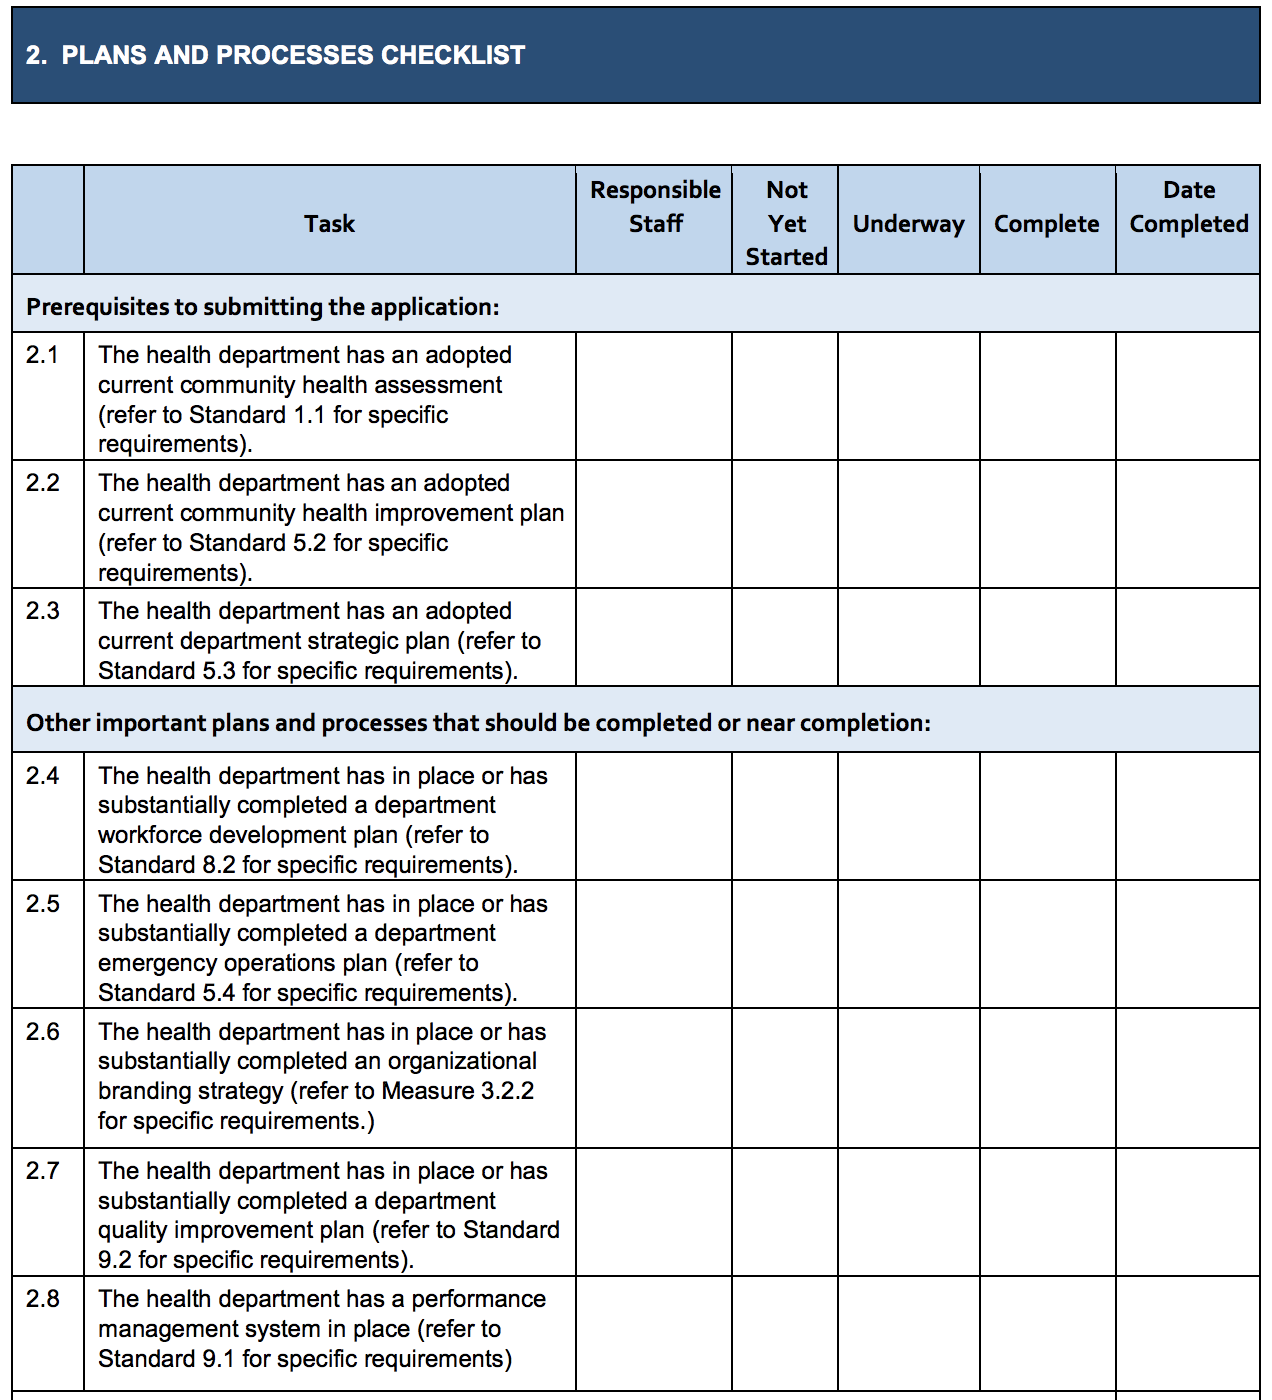 PHAB plans and processes checklist